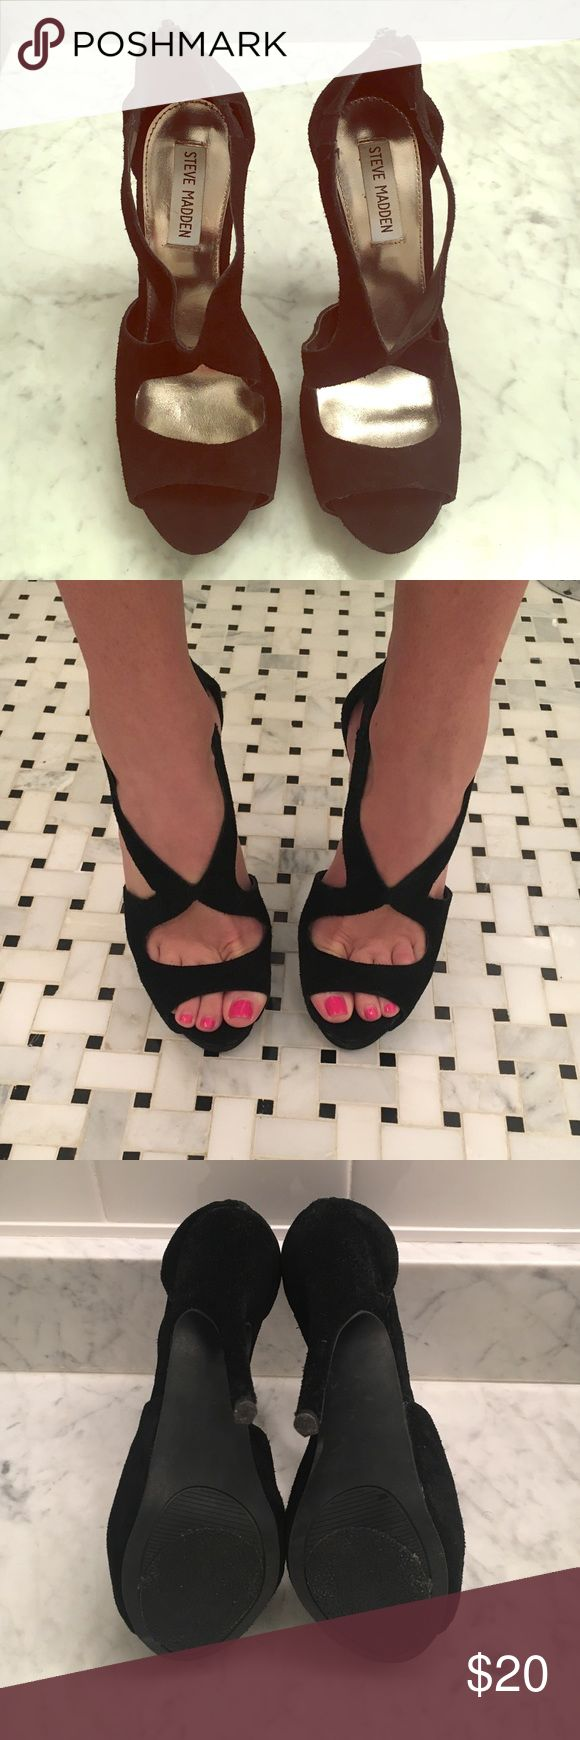 """Steve Madden Platform Sandals Black suede platform sandals by Steve Madden. Size 7. Worn once mostly indoors. Nonslip sole applied. Heel height is approximately 4.5"""" with 1"""" platform. Zipper closure at back. Steve Madden Shoes Platforms"""